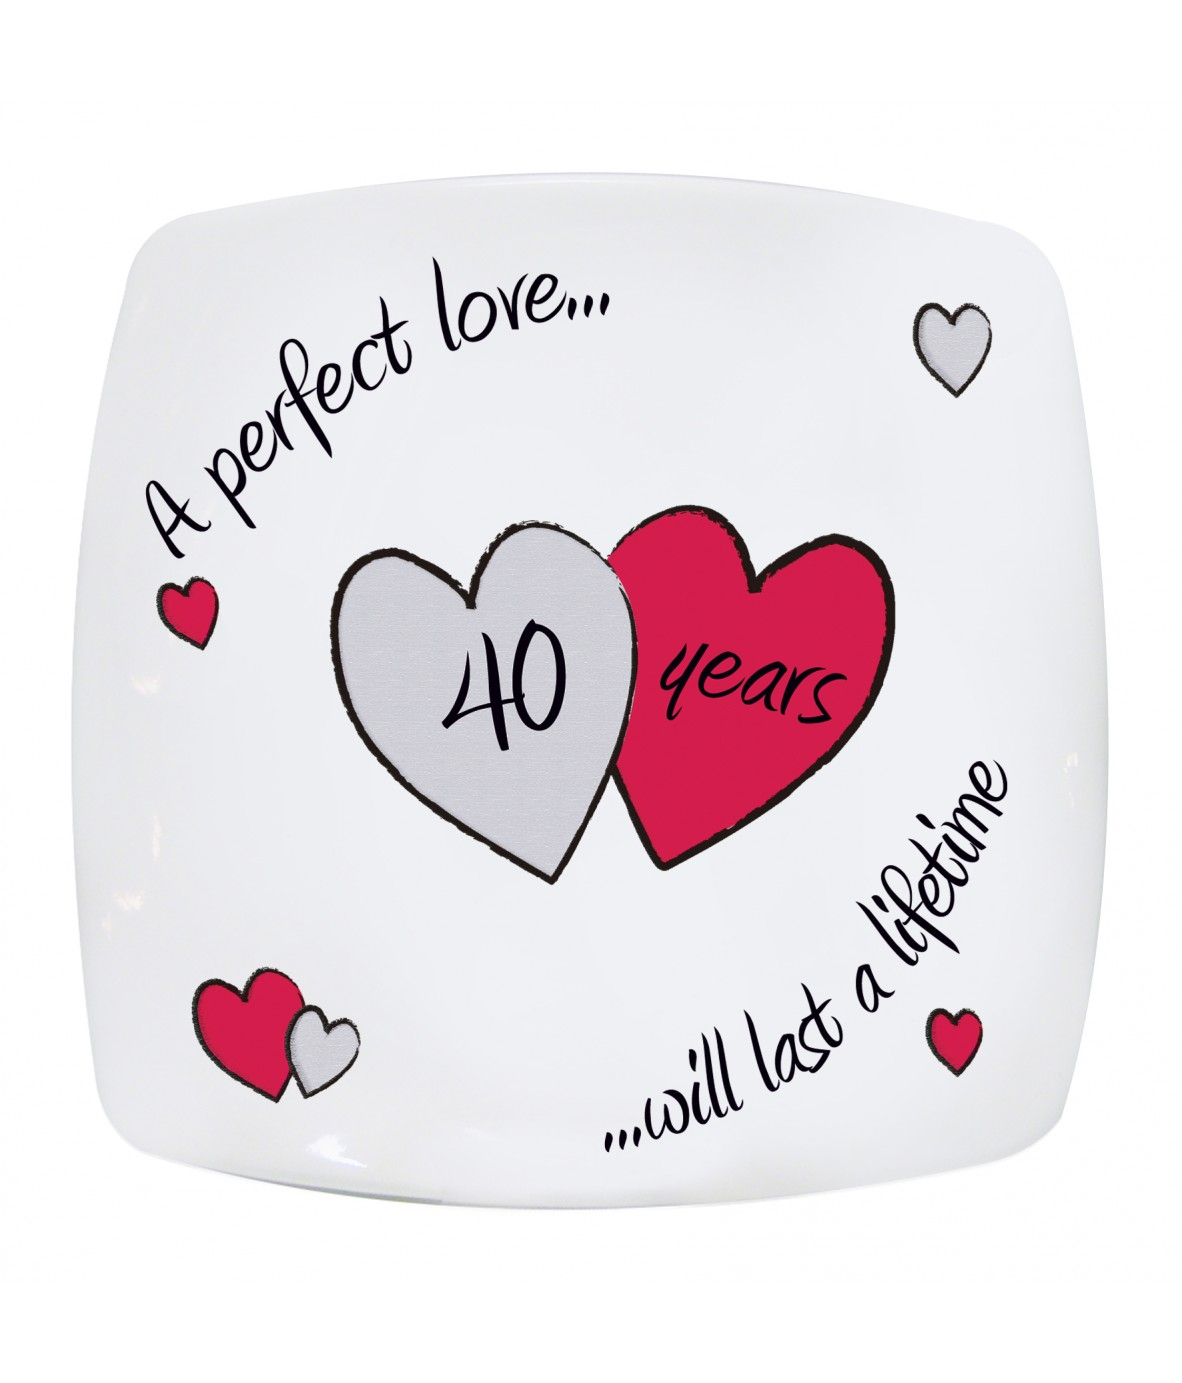 Perfect Love Ruby Anniversary Plate Just For Gifts